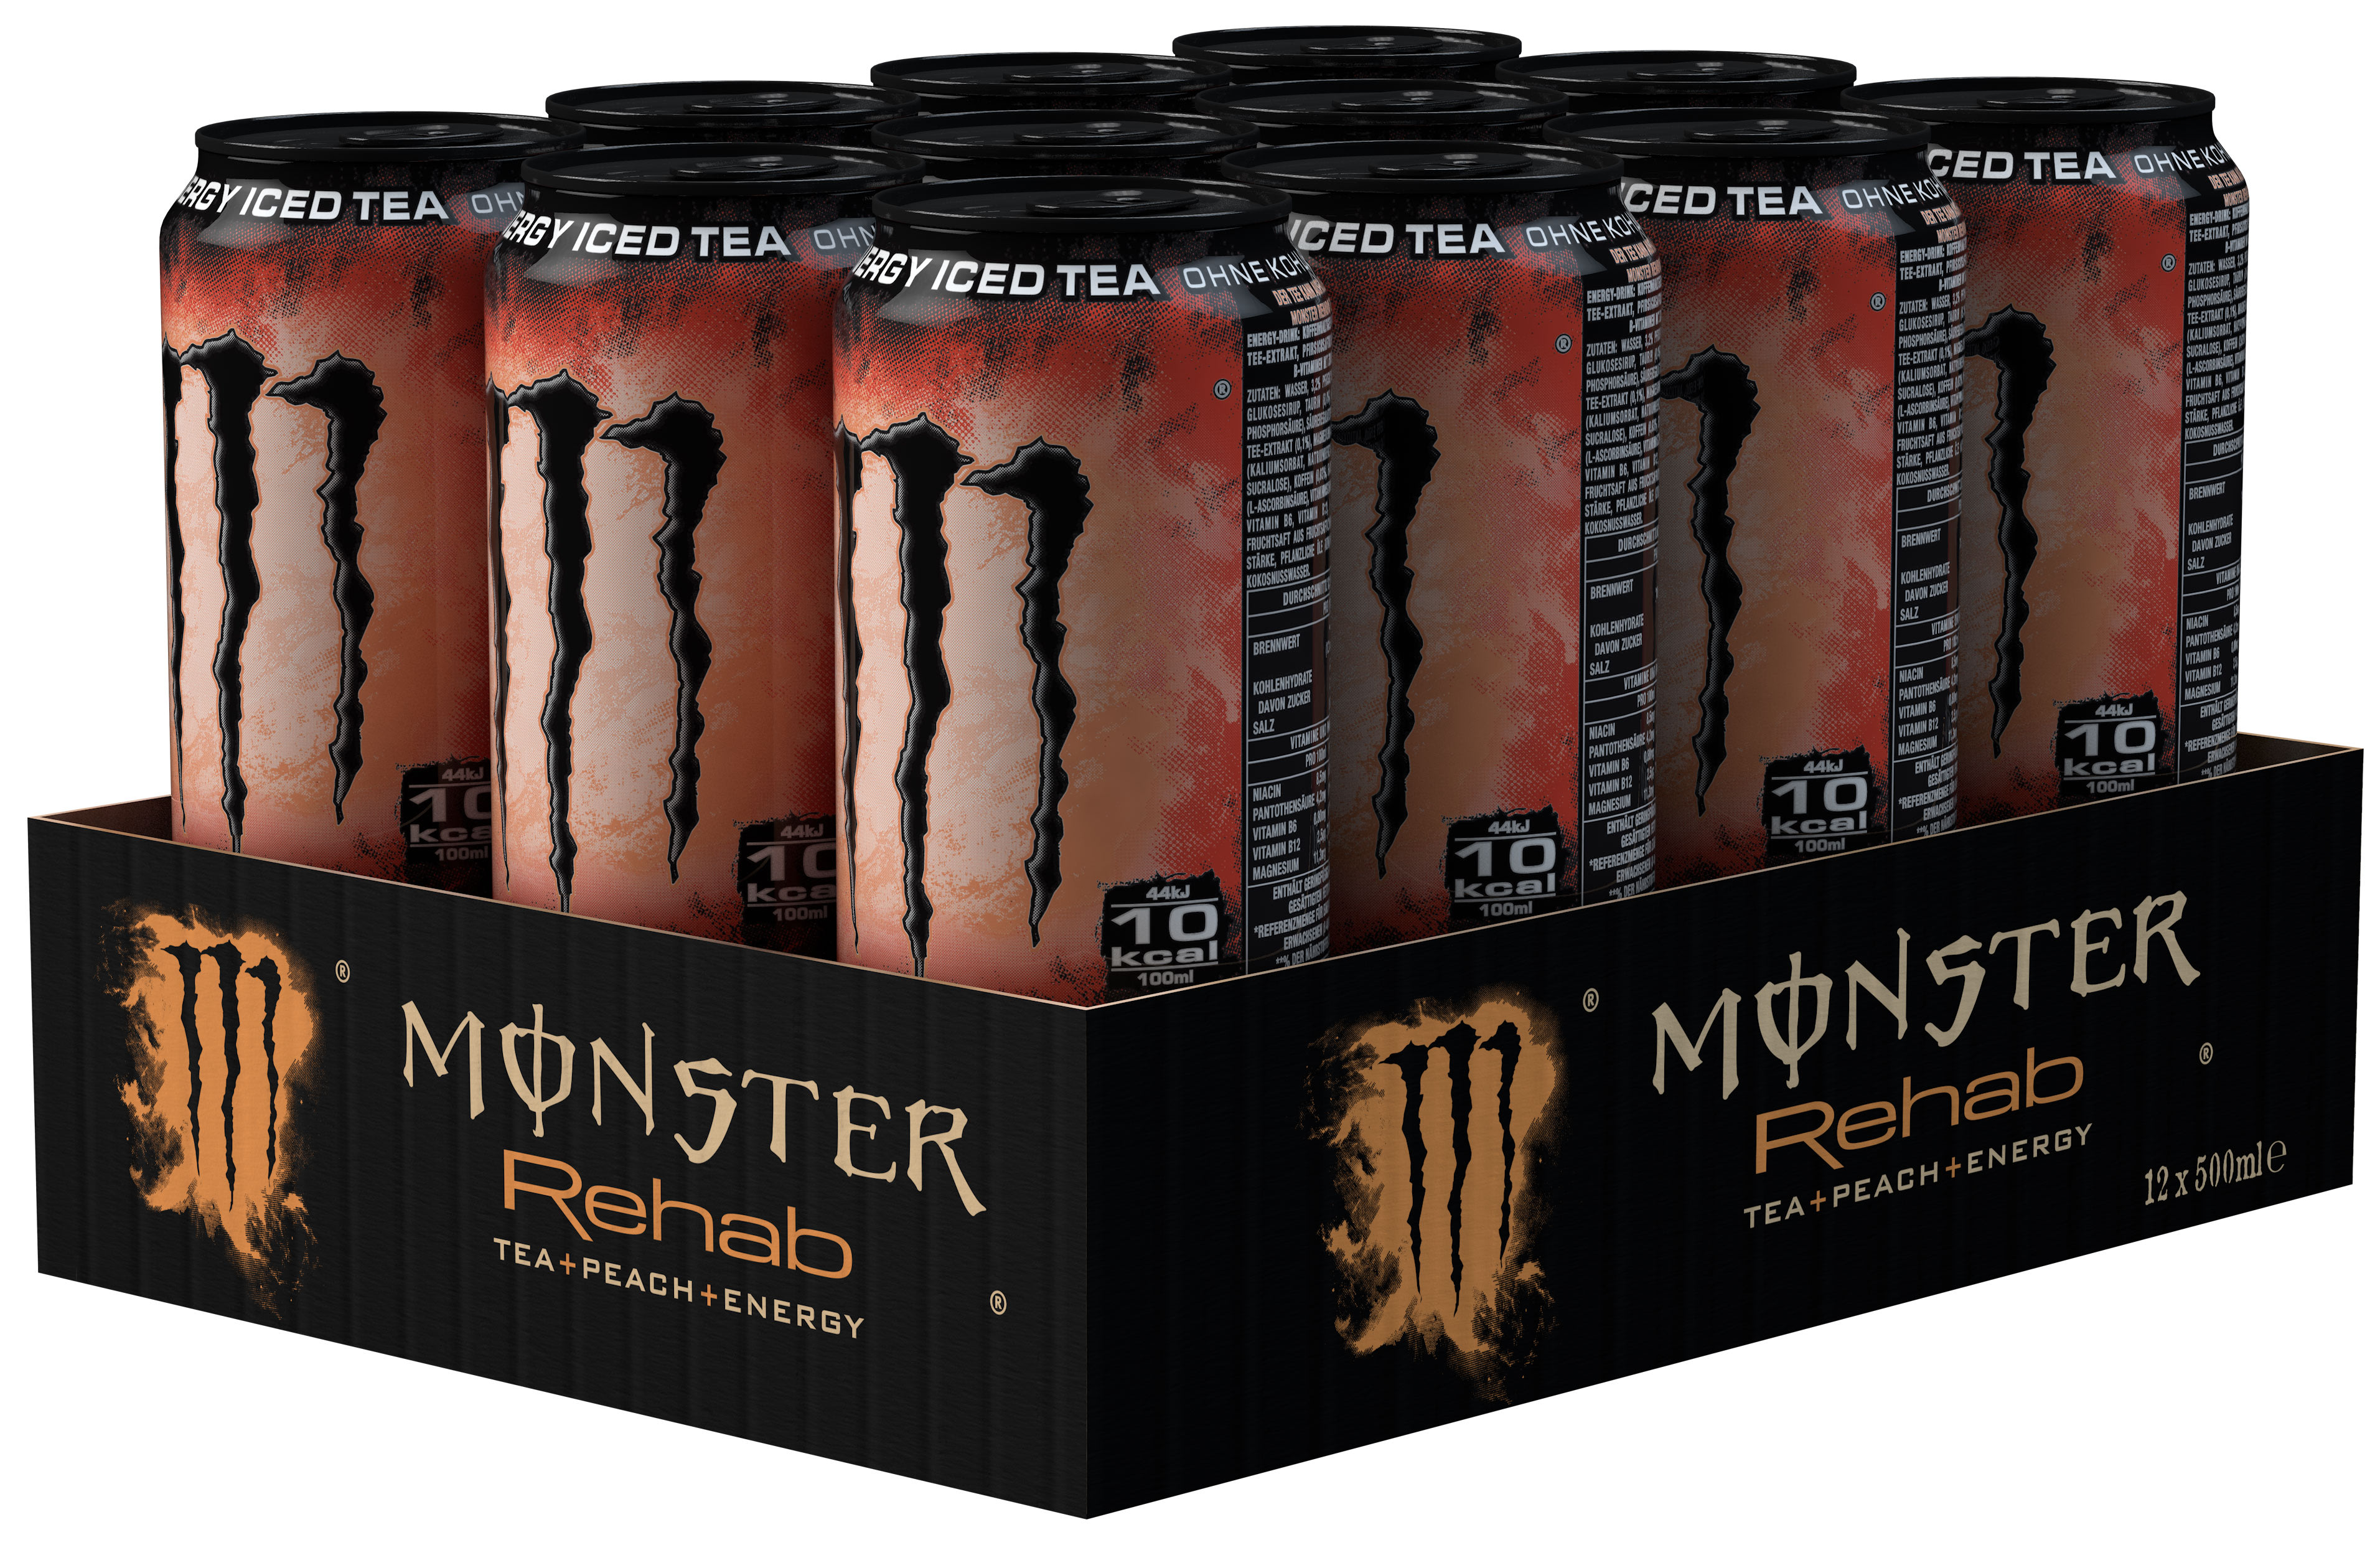 Monster Rehab Tea + Peach + Energy Karton 24 x 0,5 l Dose Einweg